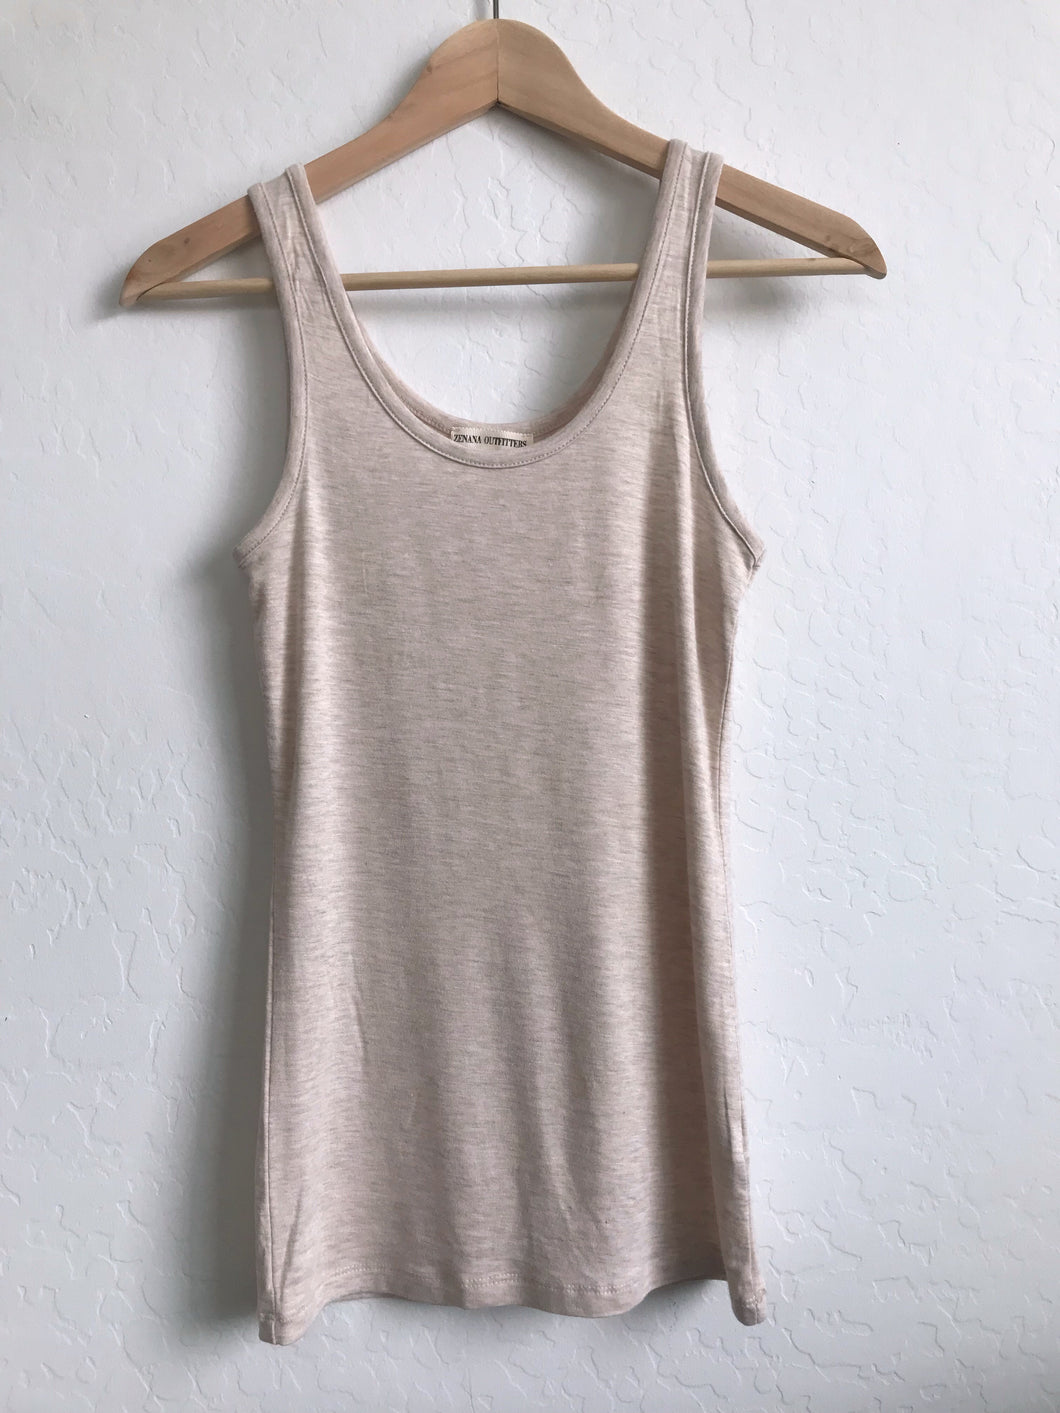 Layering Tank Top - 5 colors (size S & 2XL)